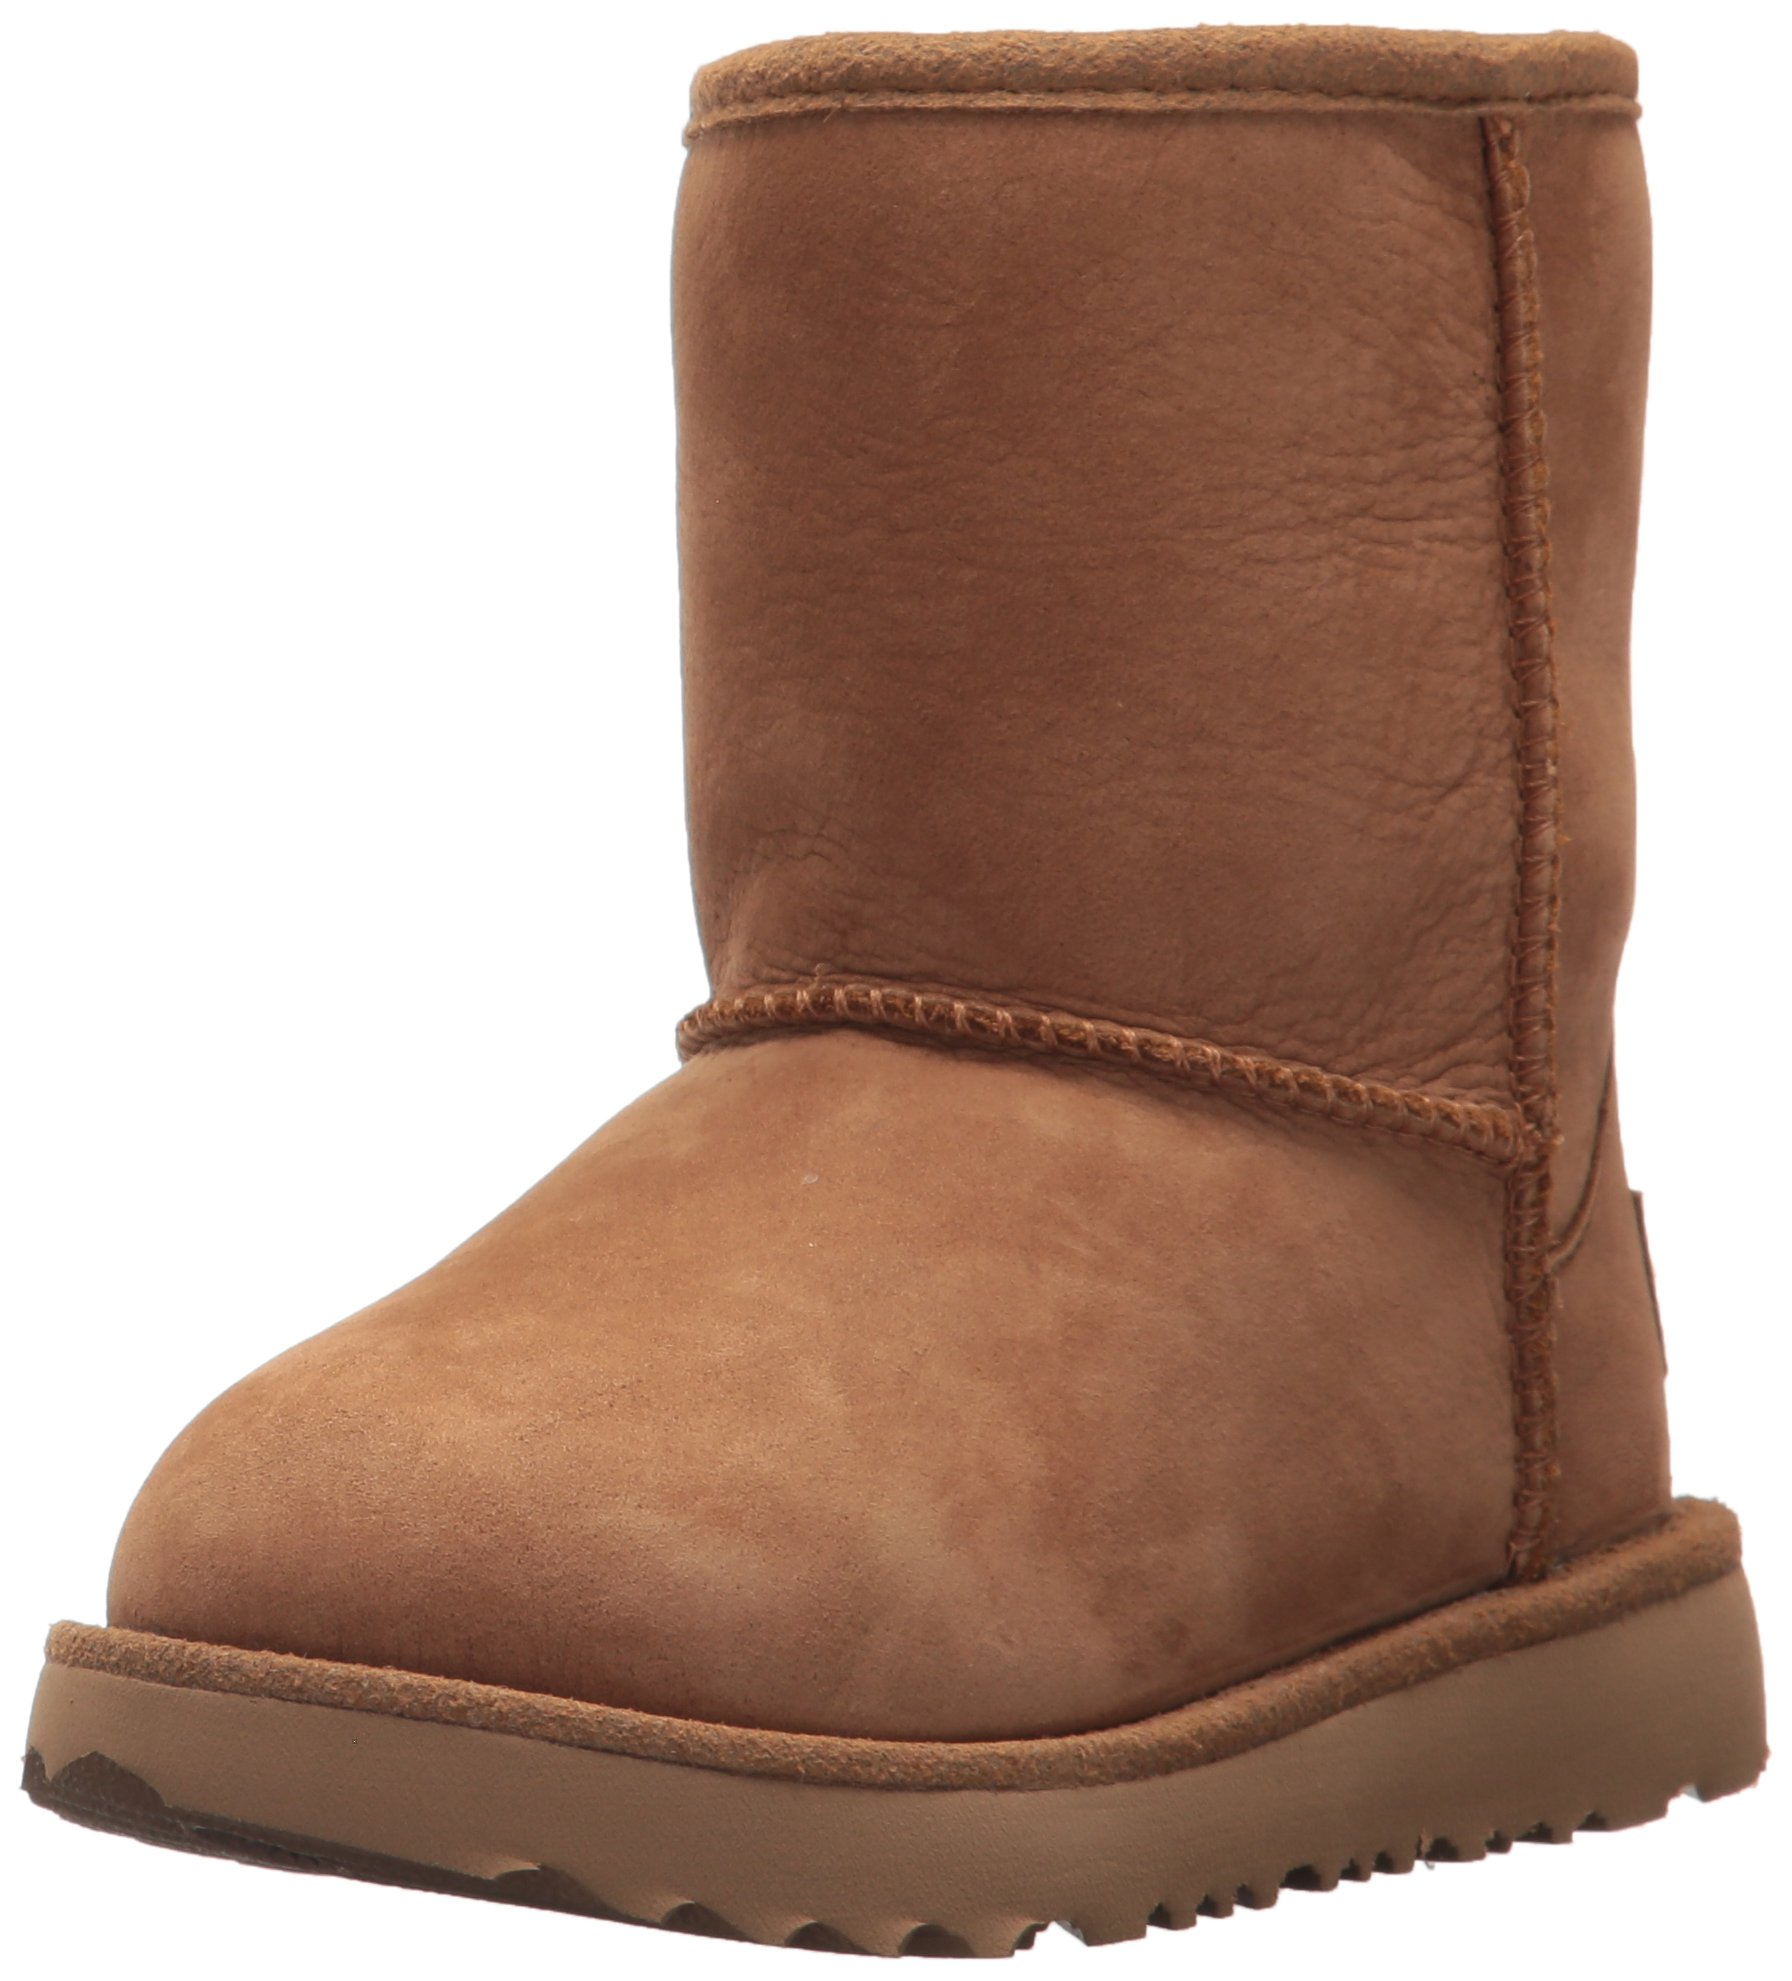 UGG Kids T Classic Short II WP Pull-On Boot, Chestnut, 6 M US Toddler by UGG